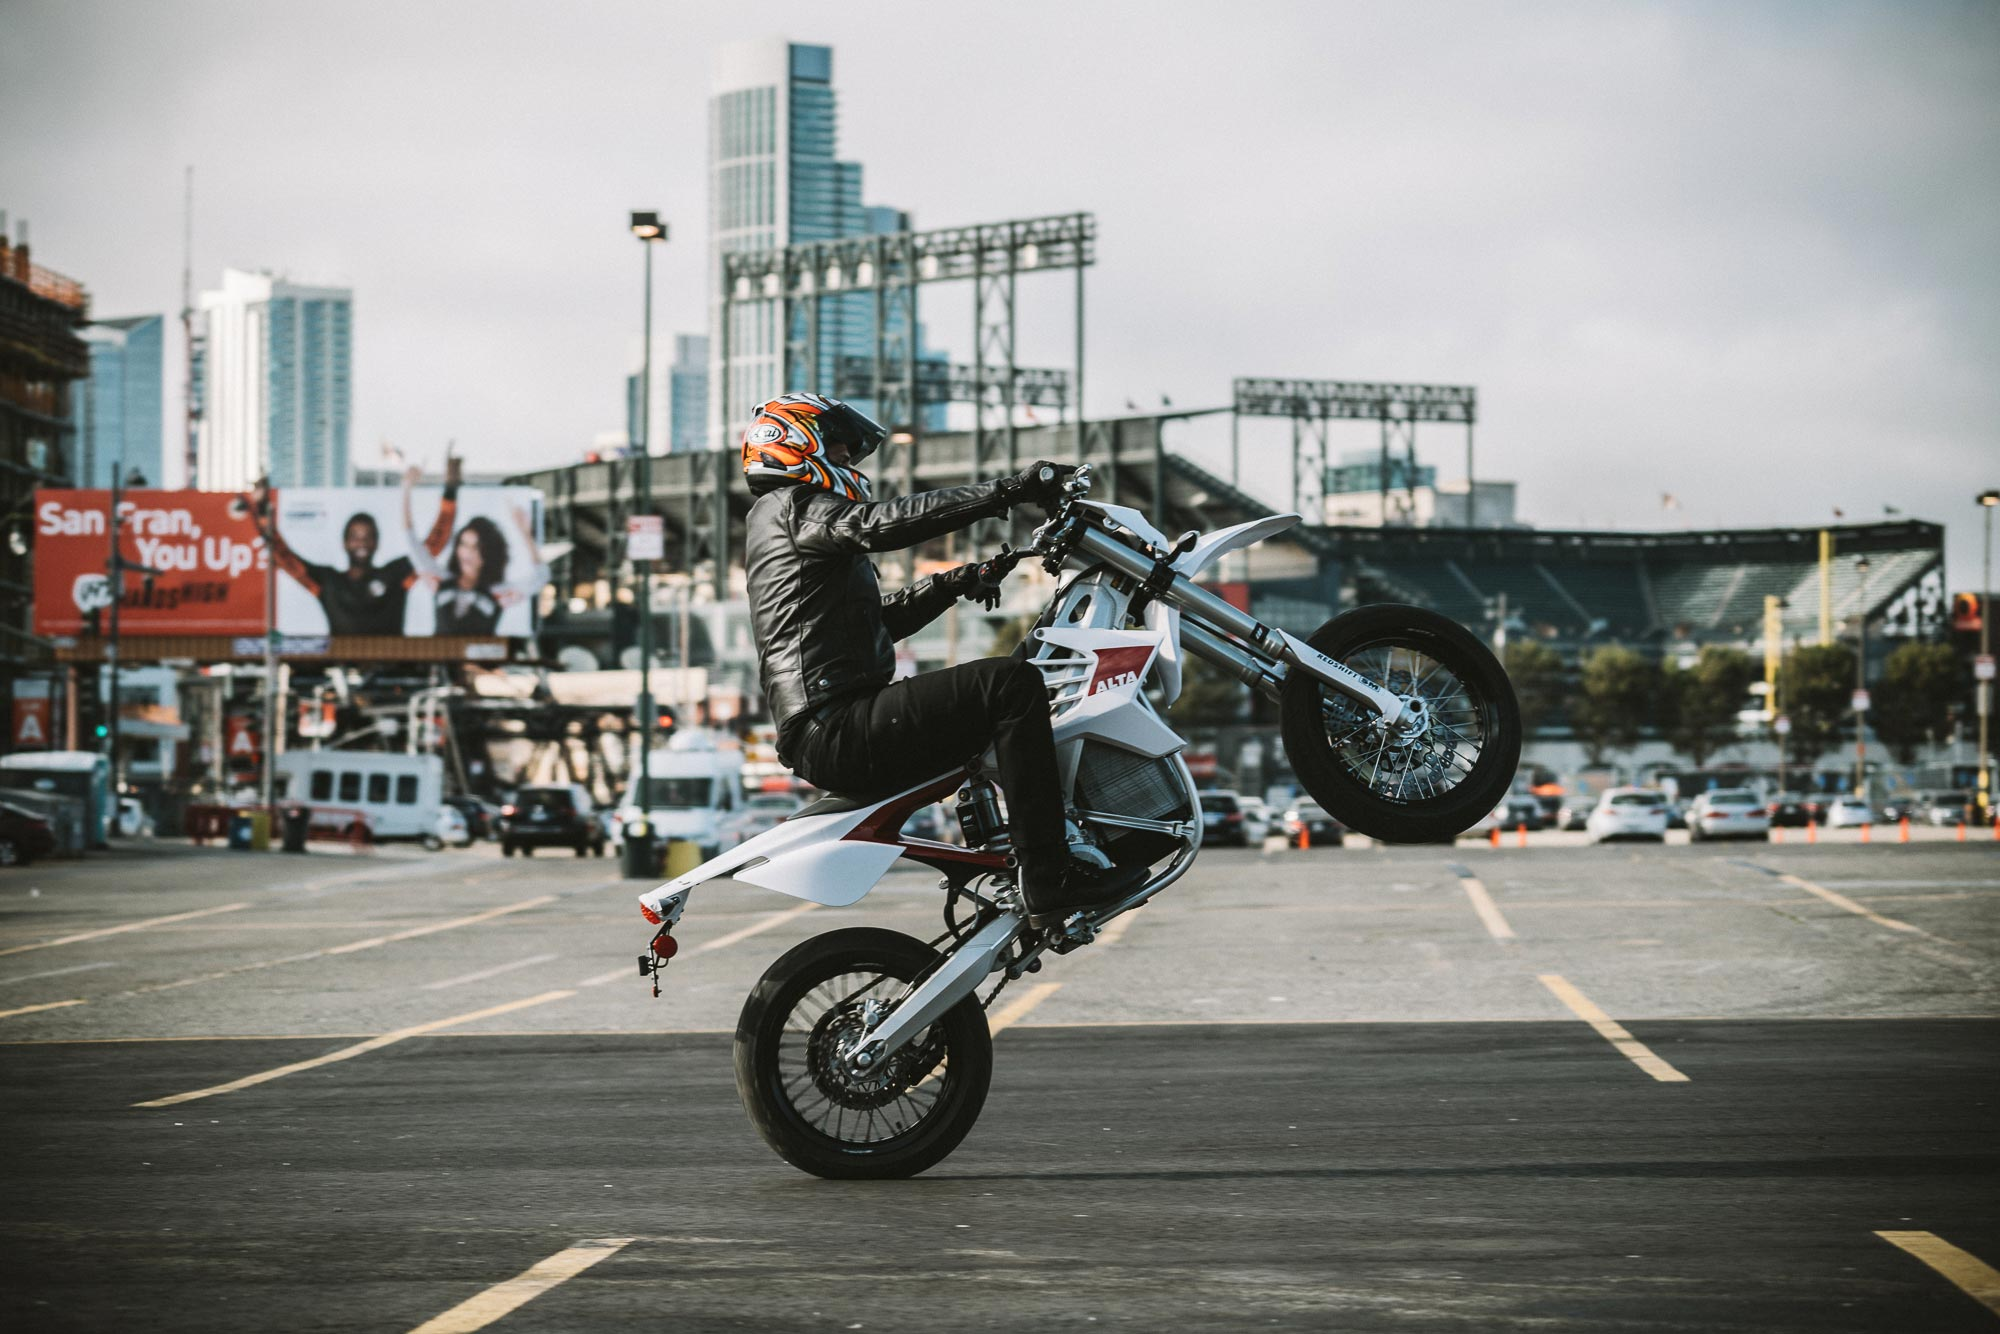 Motorcycle gloves san francisco -  Fundraising Rounds For A Total Of 27 Million Capital Raised In Exchanged For Preferred Stock In The San Francisco Based Electric Motorcycle Company